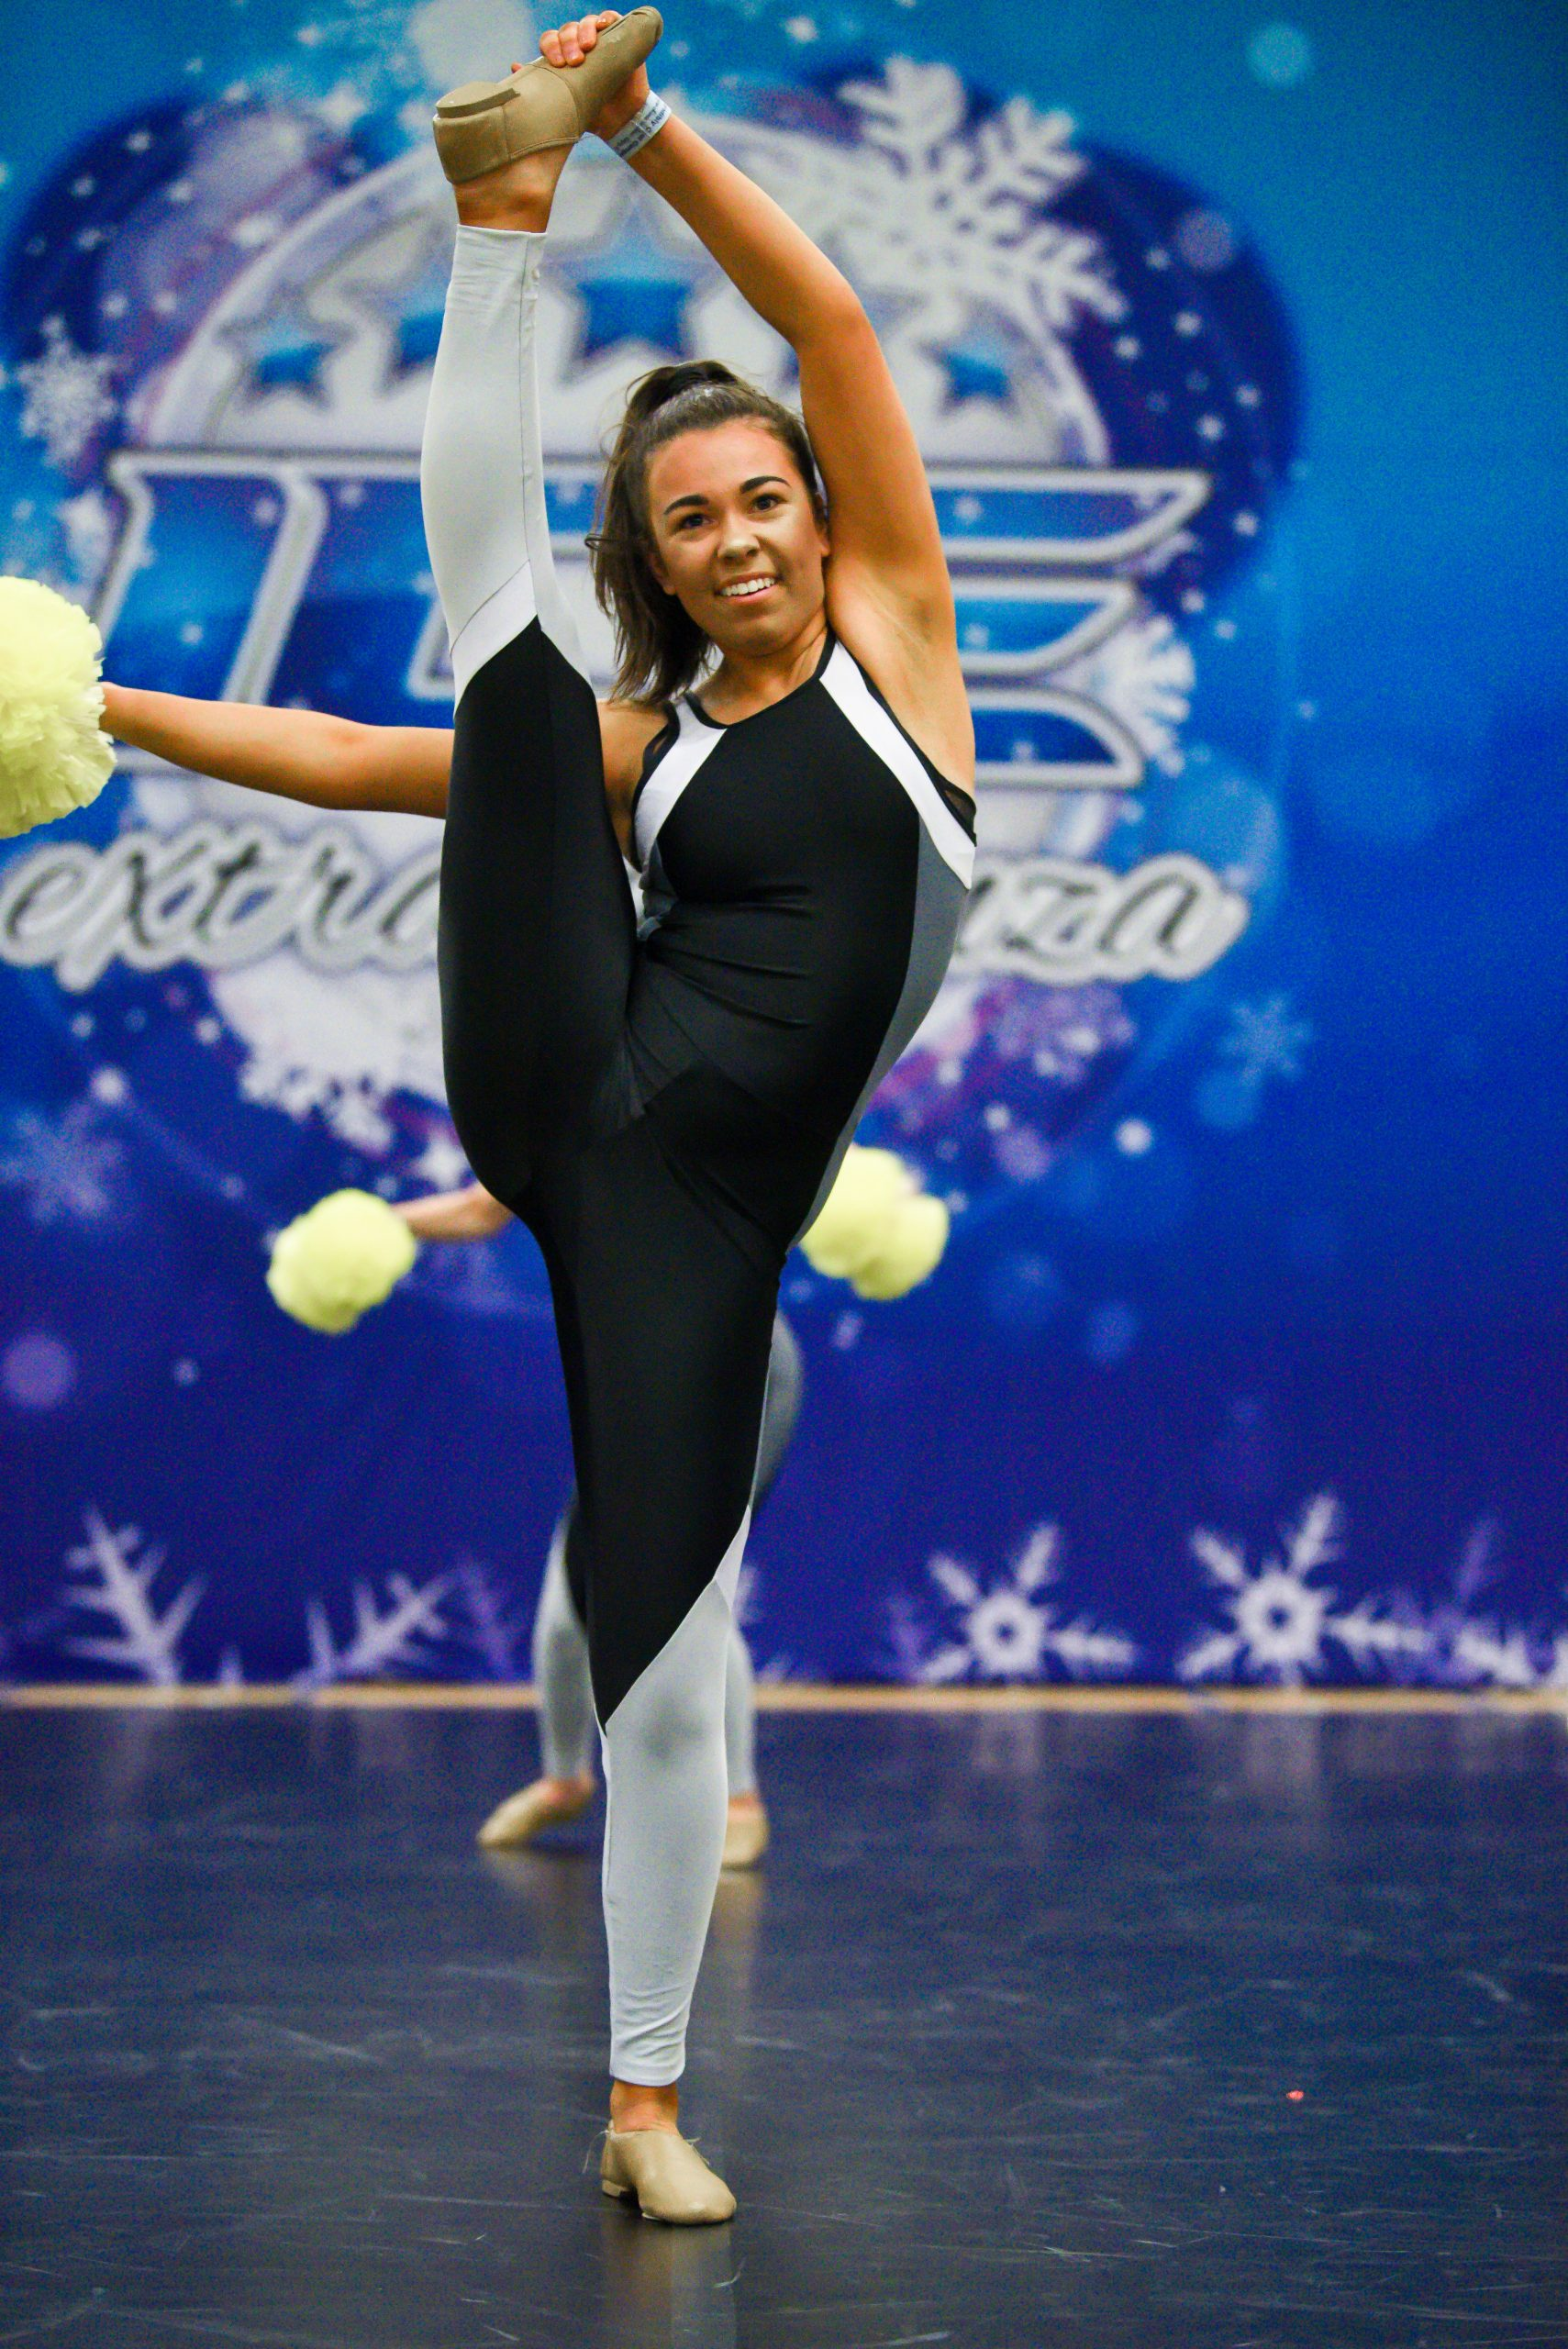 A dancer competes as part of a team in a pom division at Incredibly Cool Events